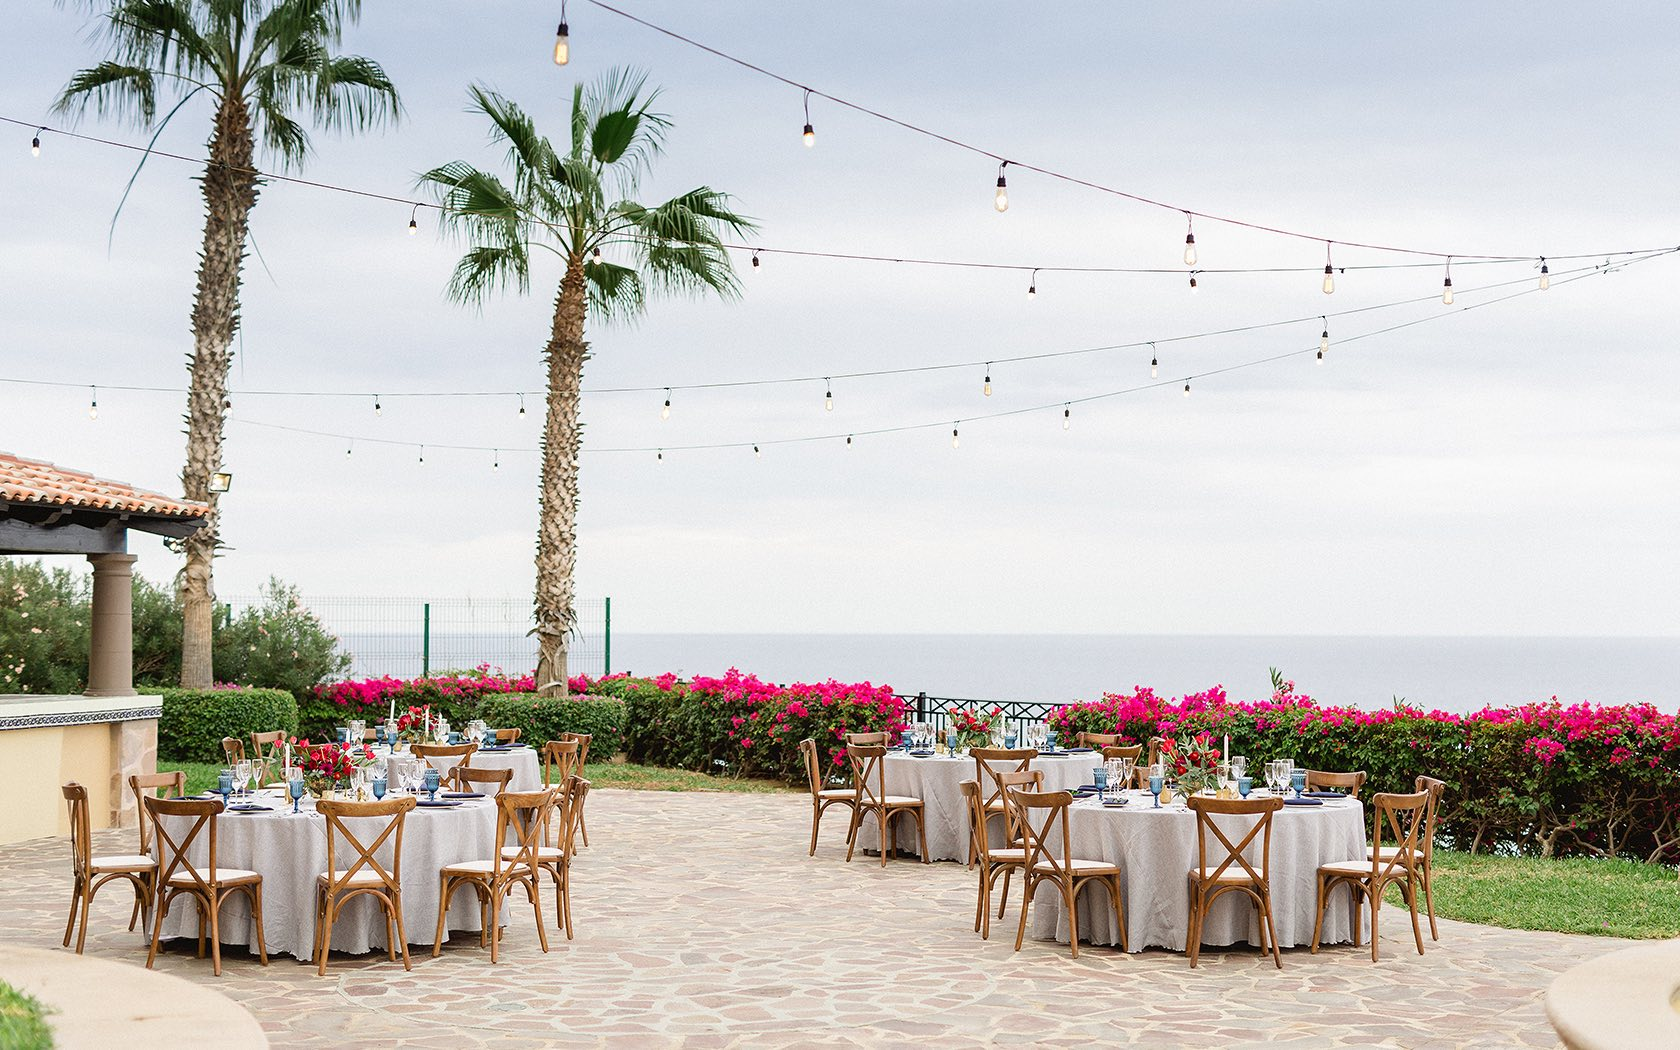 outside venue with string lights and ocean view